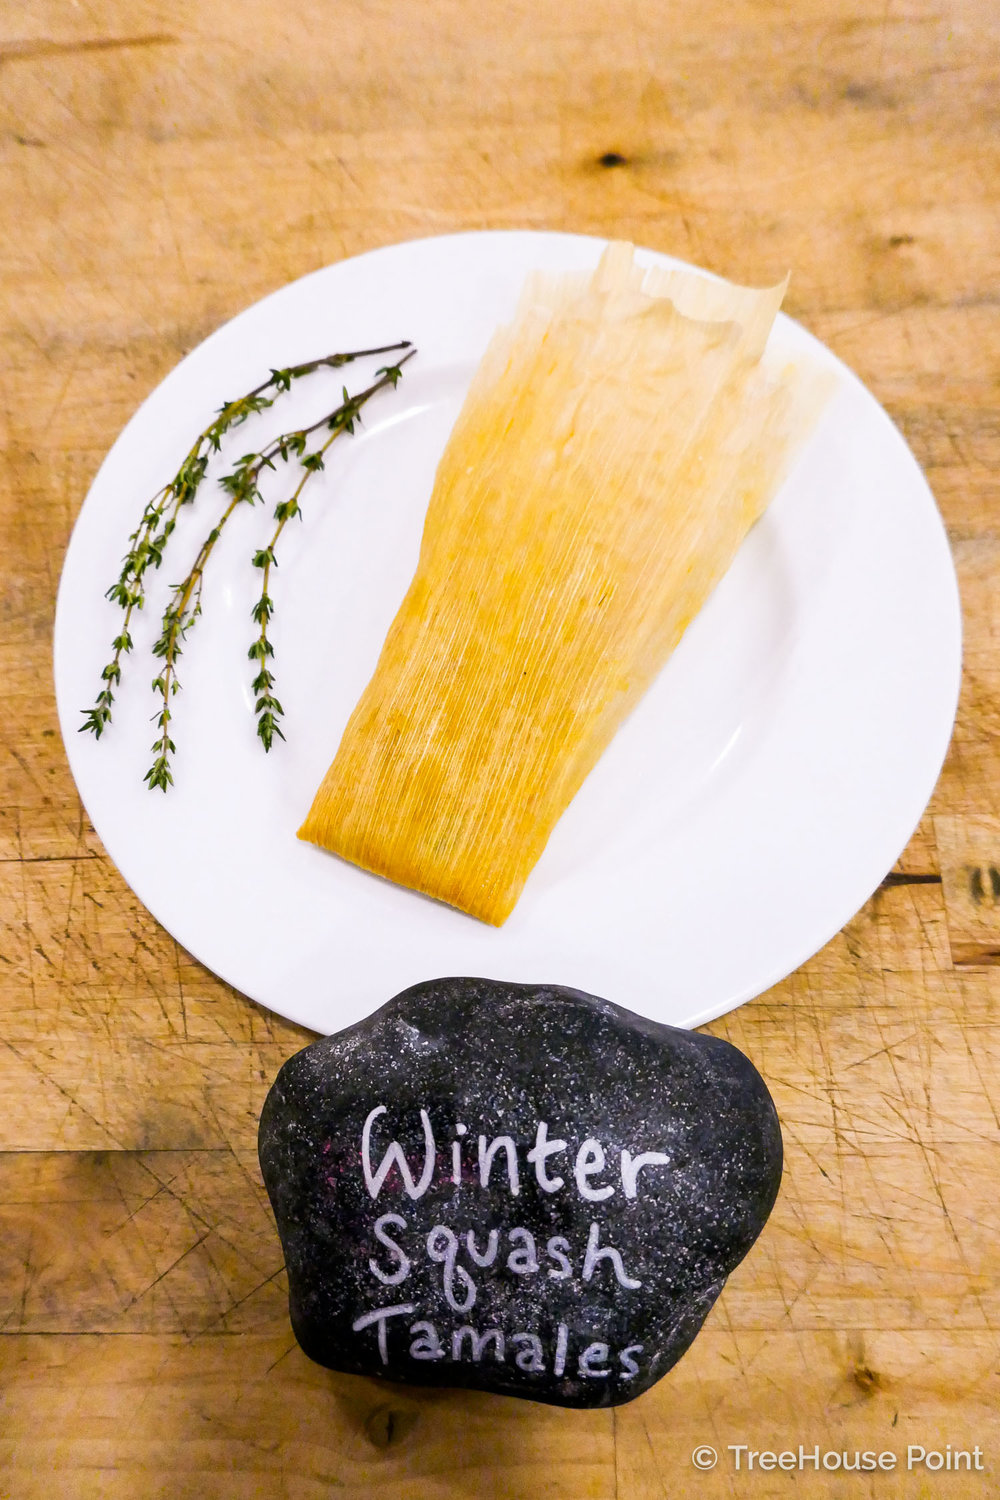 TreeHouse Point Vegan Winter Squash Tamales